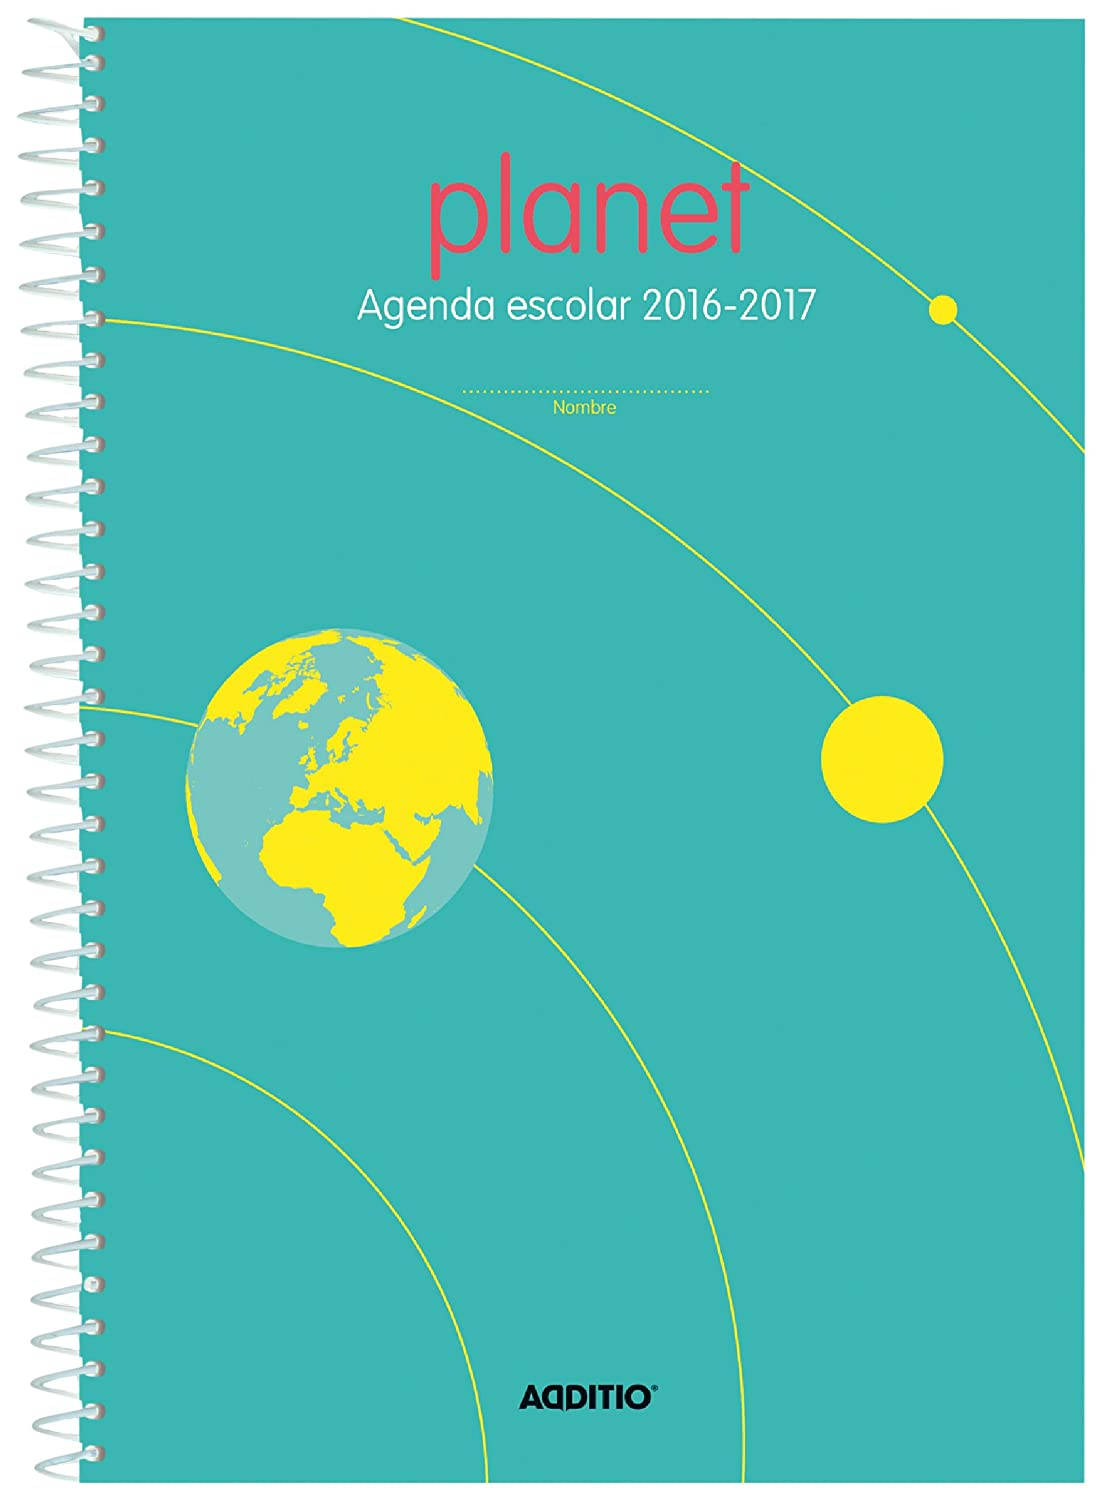 Additio A122 - Agenda Planet 2016-2017 para Educación Primaria, color azul